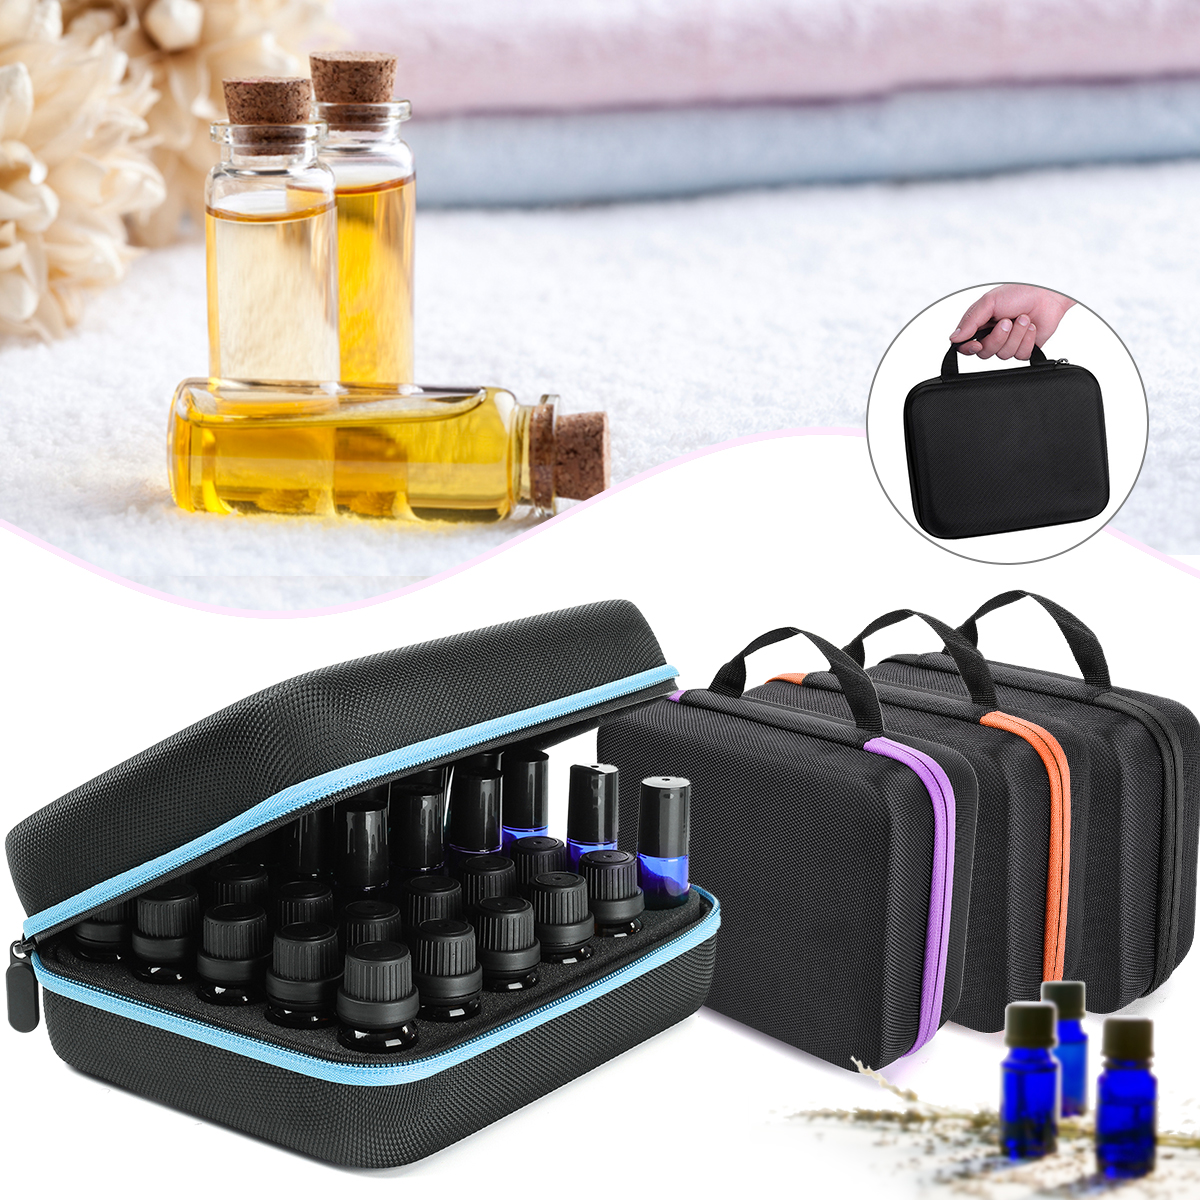 Essential Oil Case 30 Bottles 5ML10ML 15ML Perfume Oil Essential Oil Box Travel Portable Carrying Holder Nail Polish Storage Bag